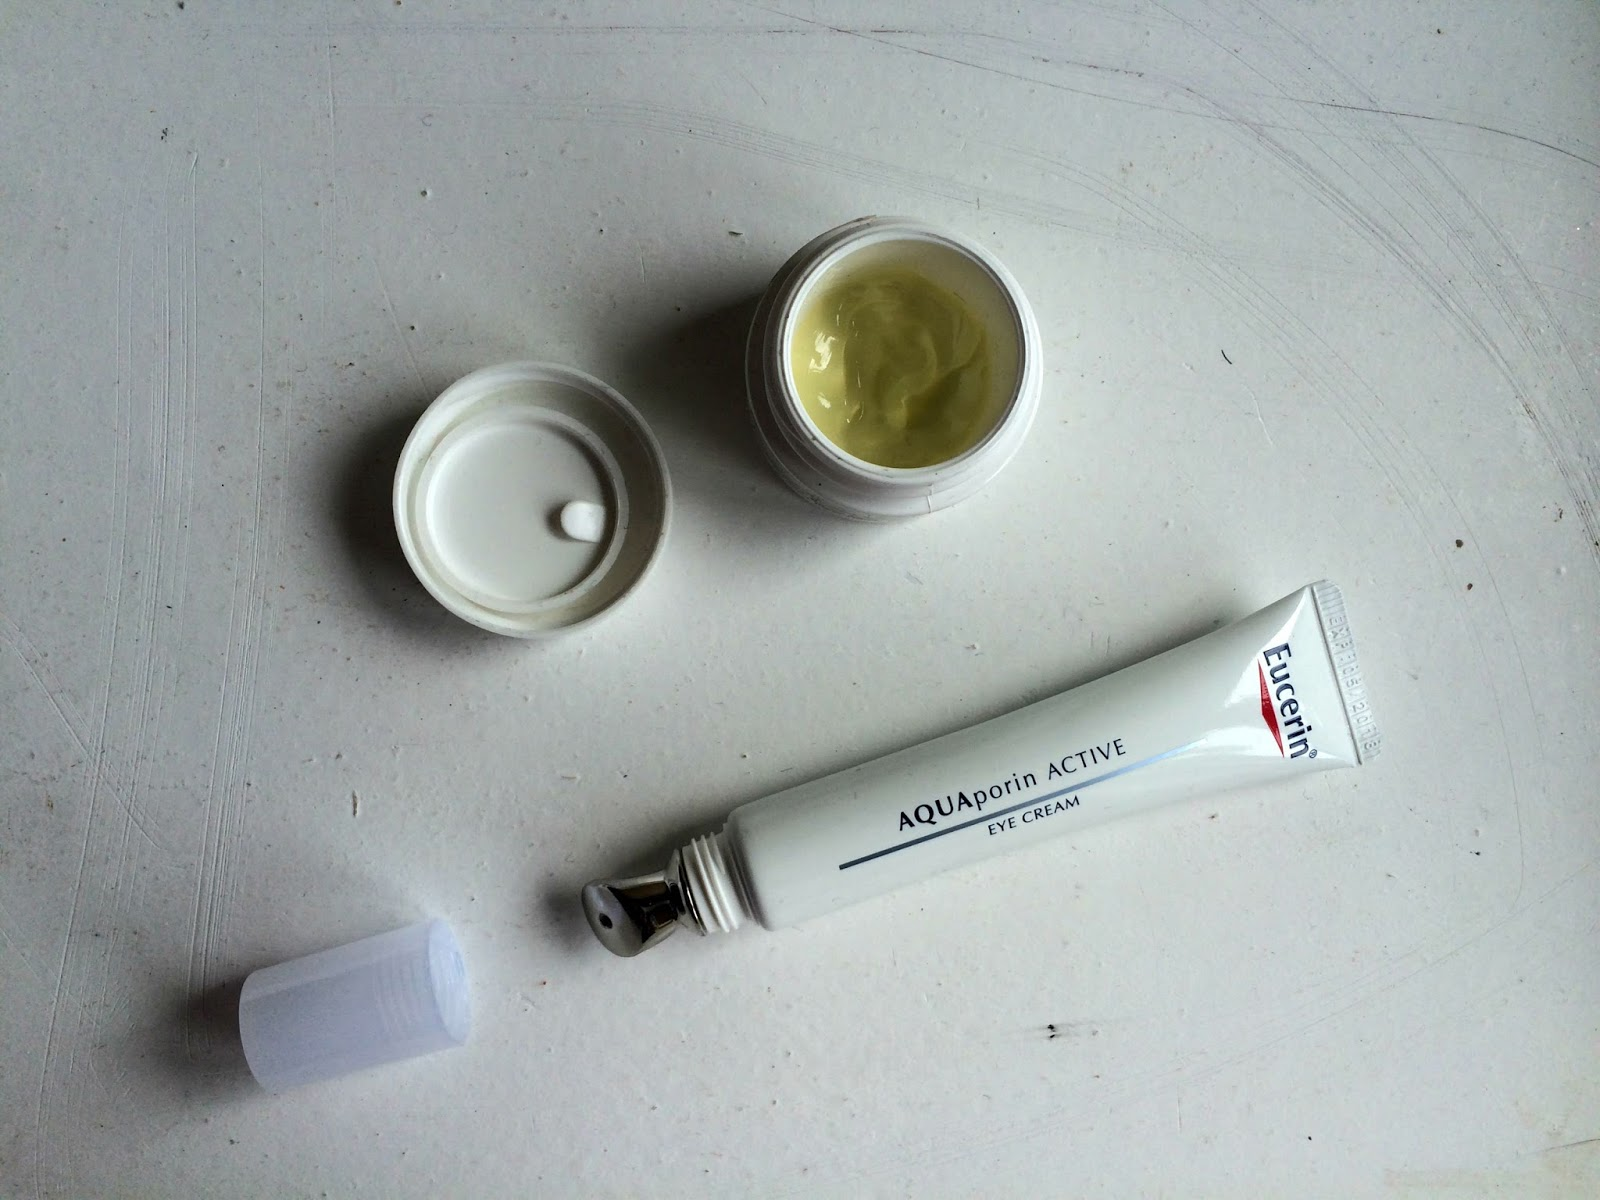 Eye creams kiehl's creamy avocado eye treatment and eucerin aquaporin active revitalising eye care